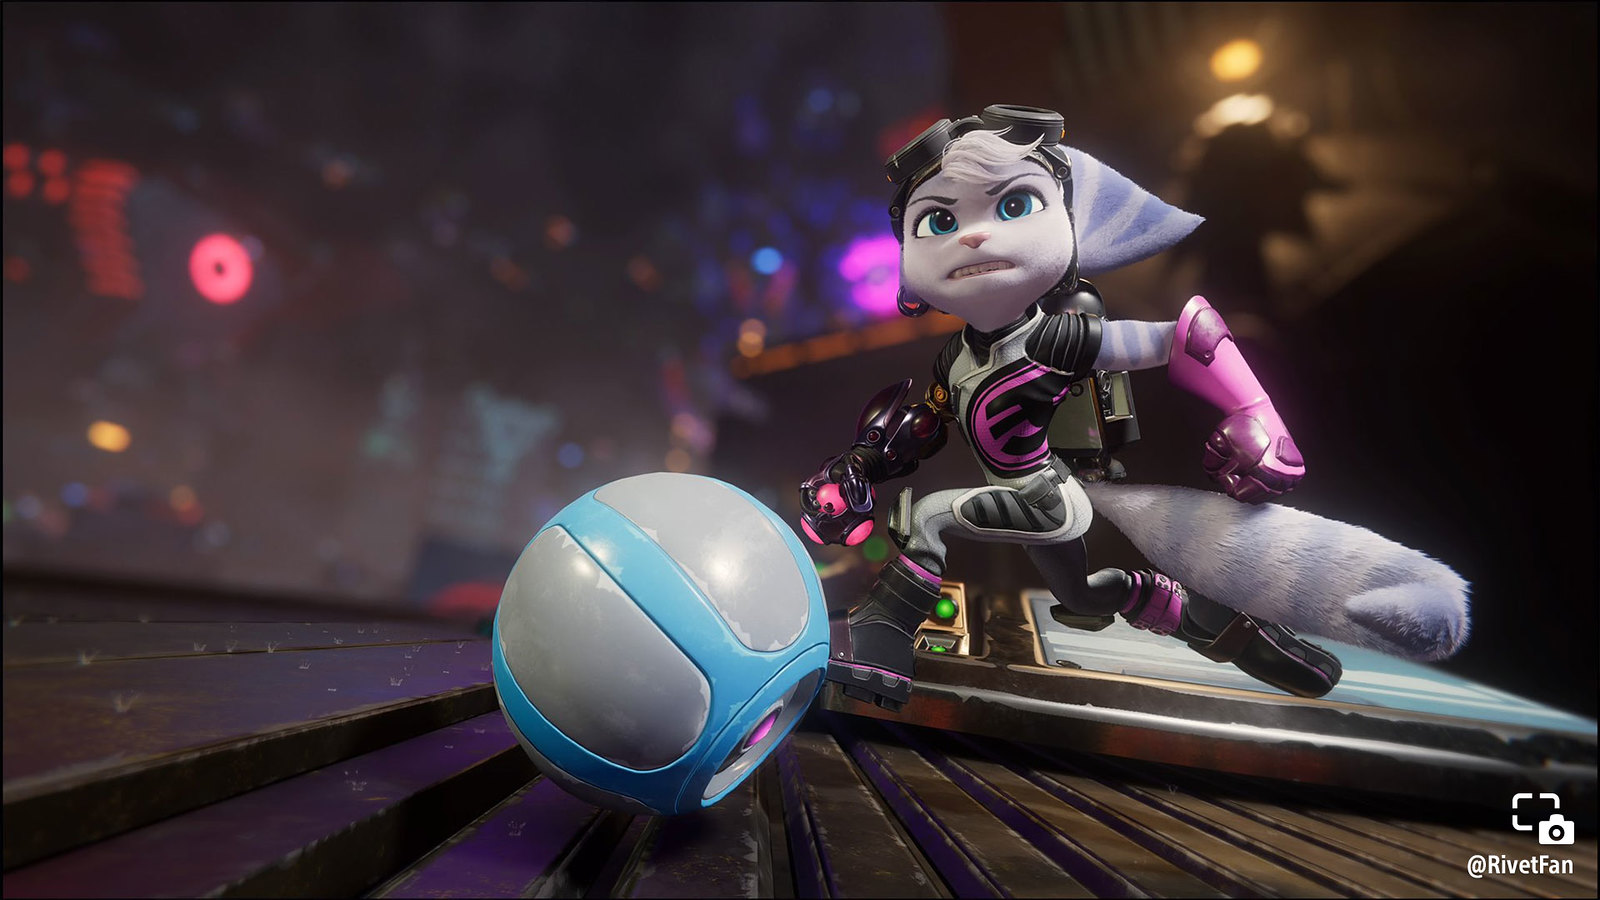 Share of the Week - Ratchet & Clank: Rift Apart Photo Mode